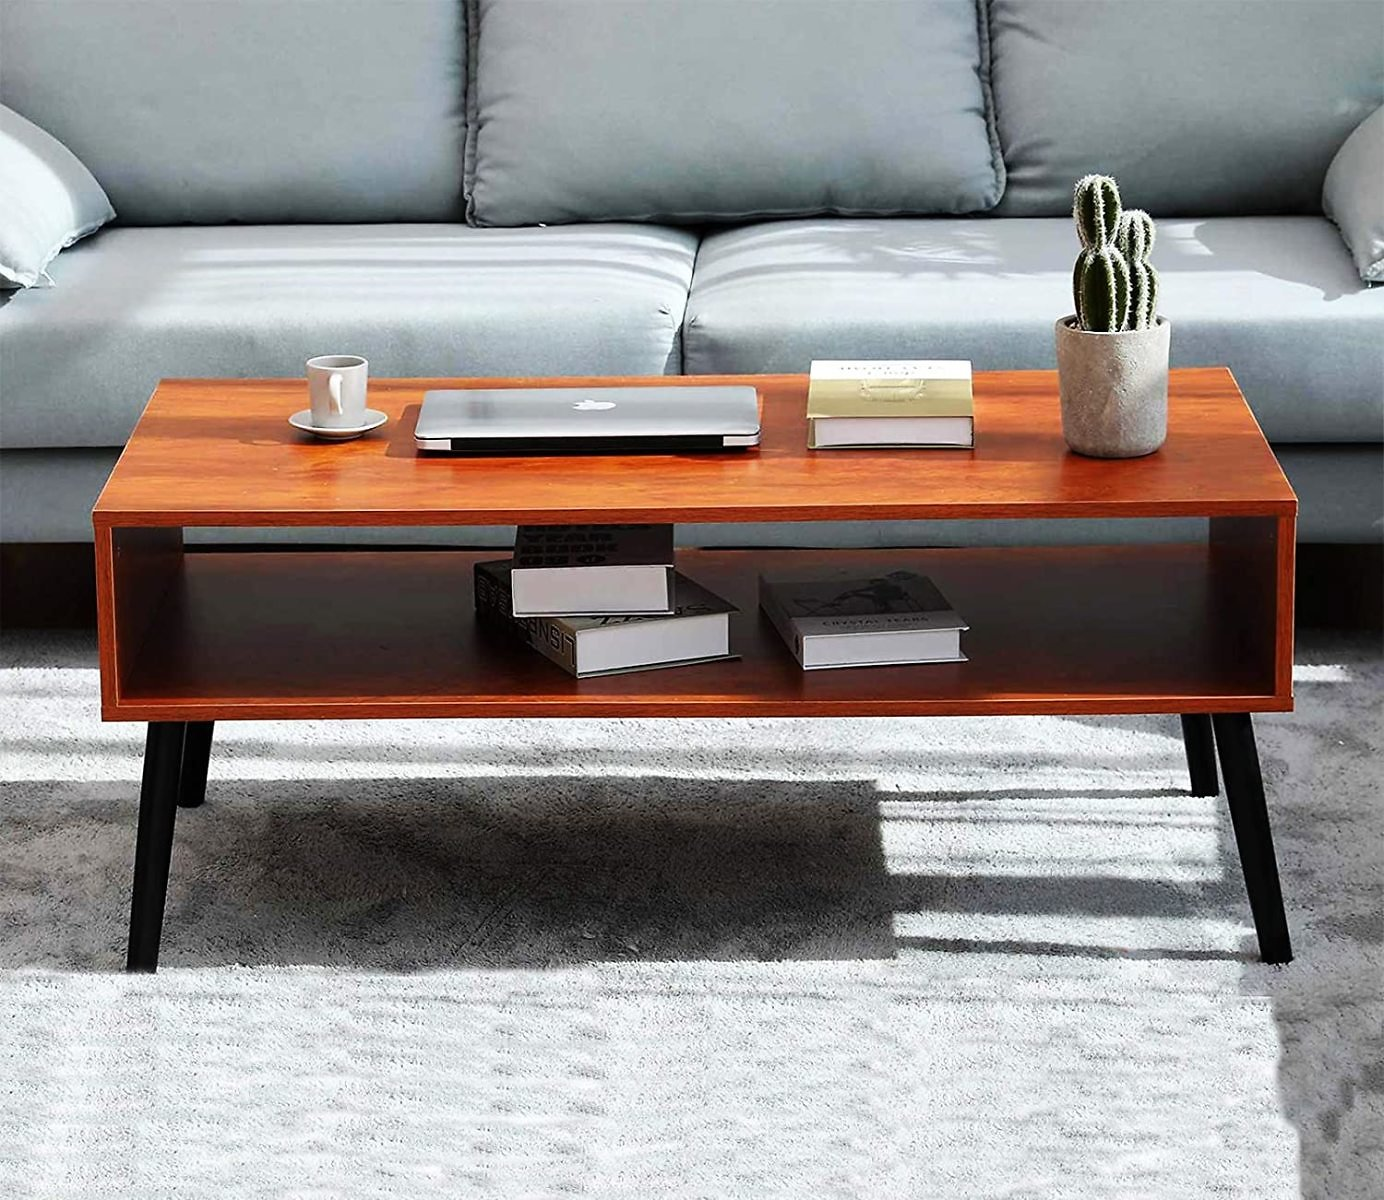 Depointer Life Mid-Century Coffee Table with Storage Shelf,Cocktail Table for Living Room,TV Table,Red Brown